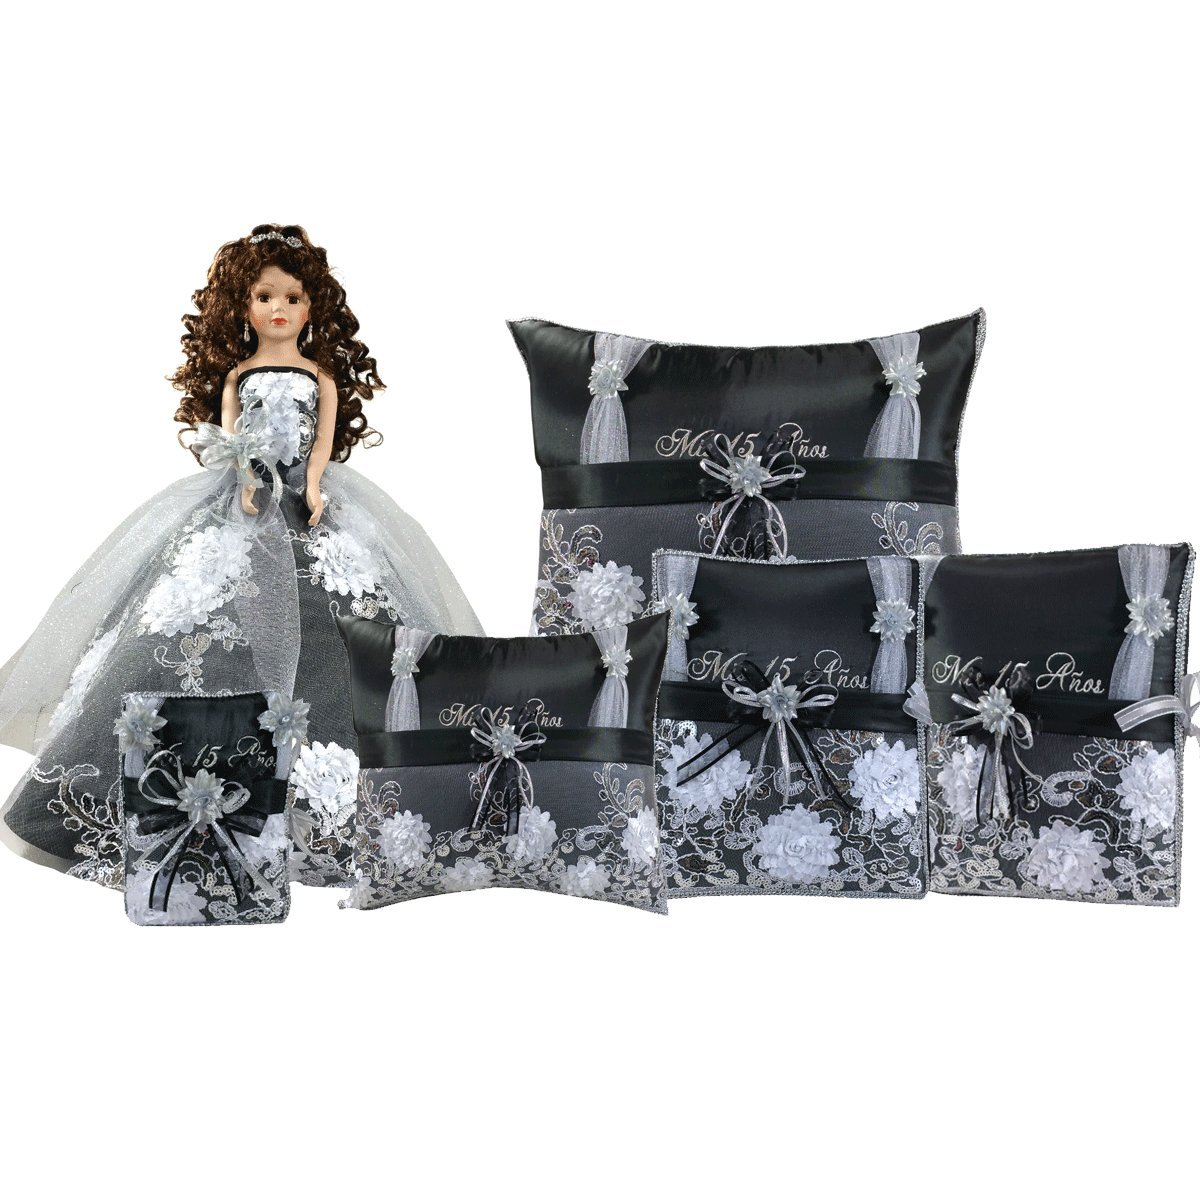 Quinceanera Complete Set Doll Guest Book Kneeling Tiara Pillow Photo Album Bible Q1056 (Add Arch to Doll +English Bible) by Quinceanera